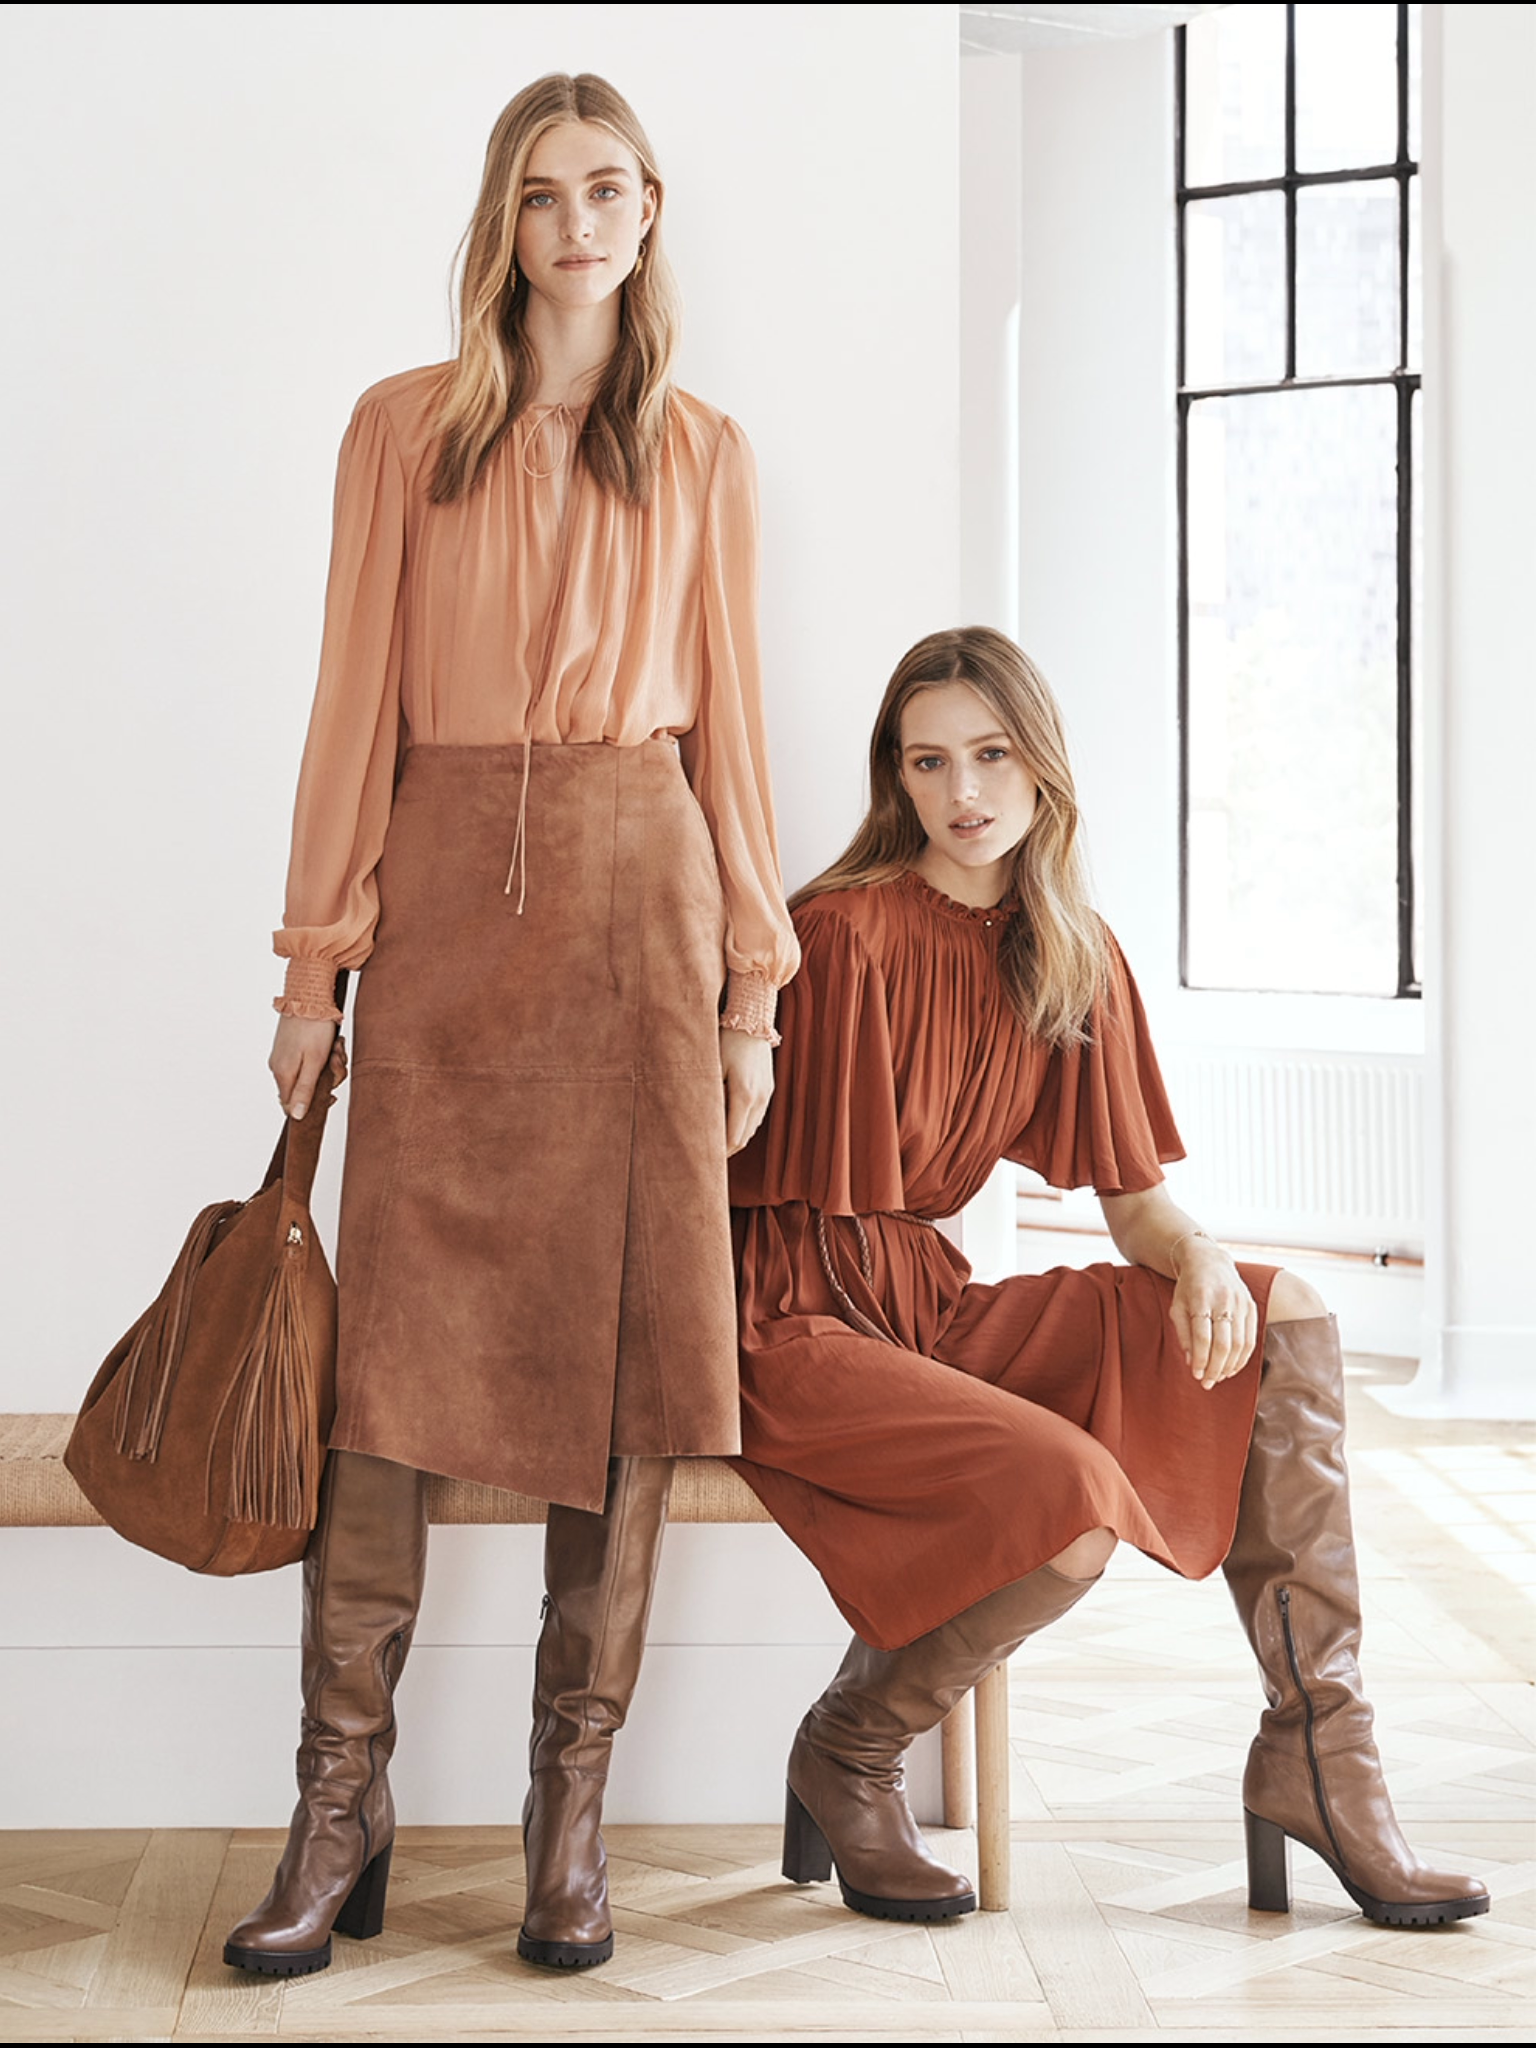 Long suede skirt and boots. | Fashion | Pinterest | Gonne e Stivali